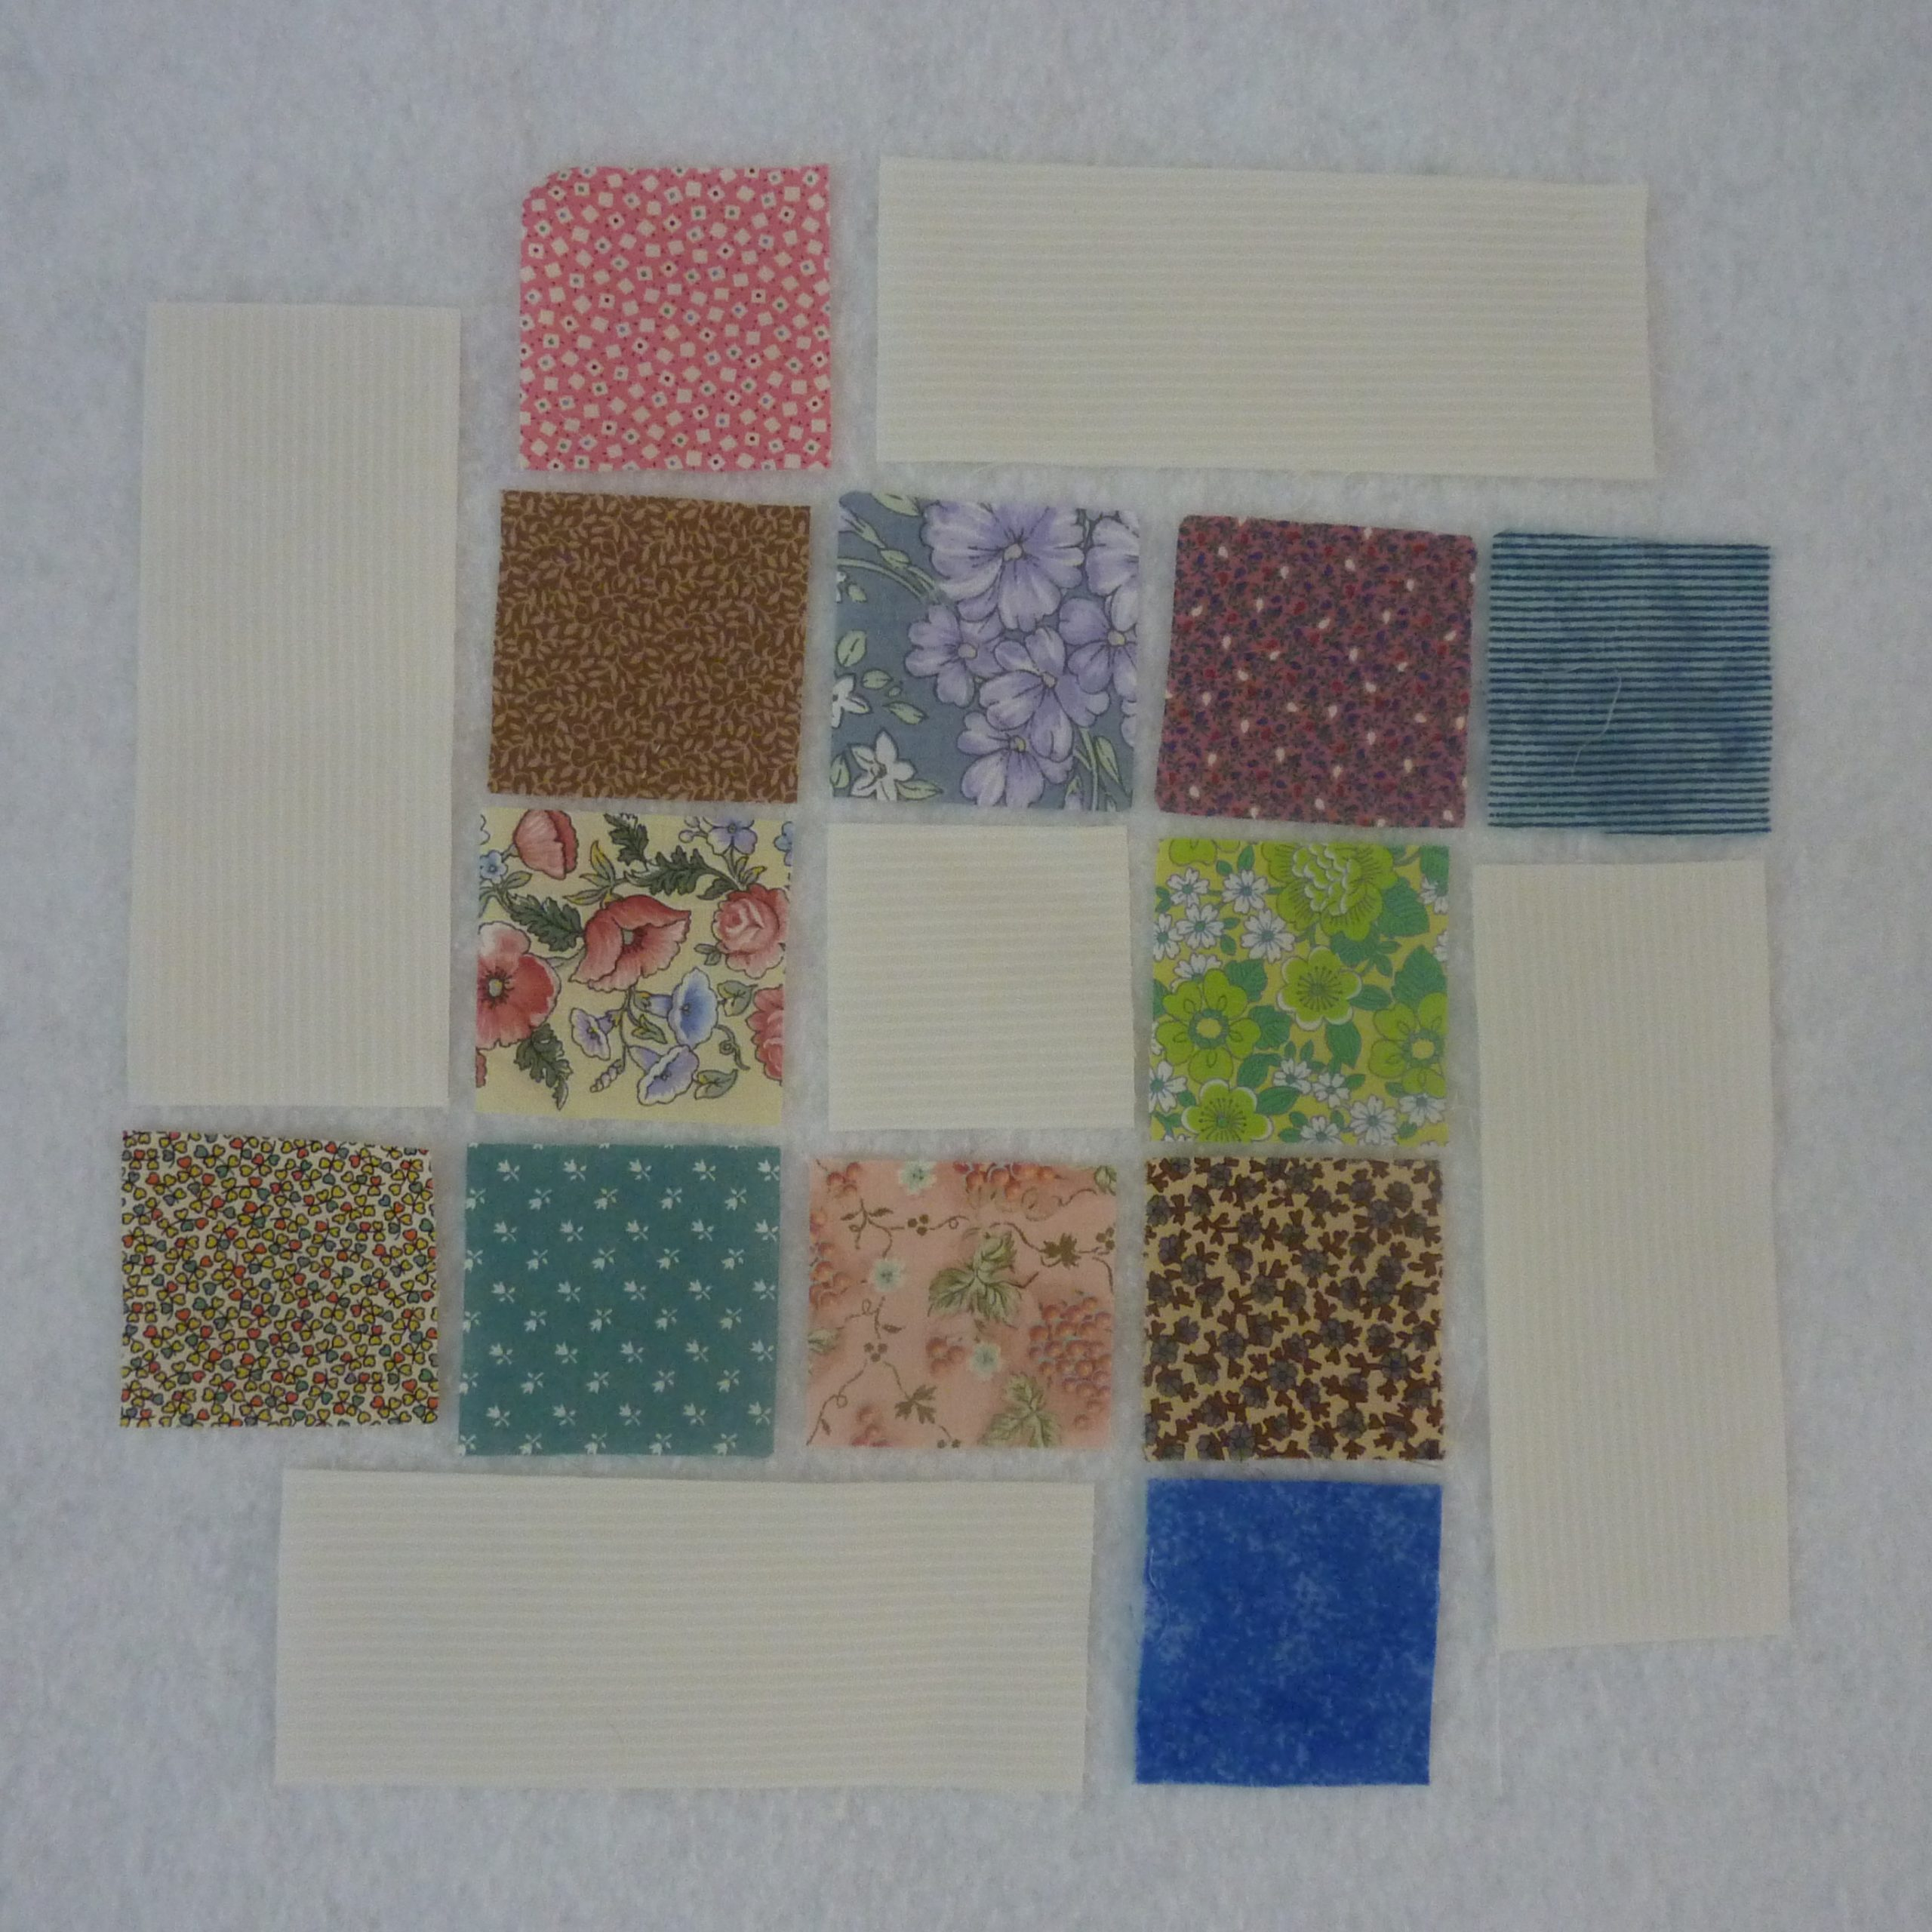 1. Patches for a Flying Squares block